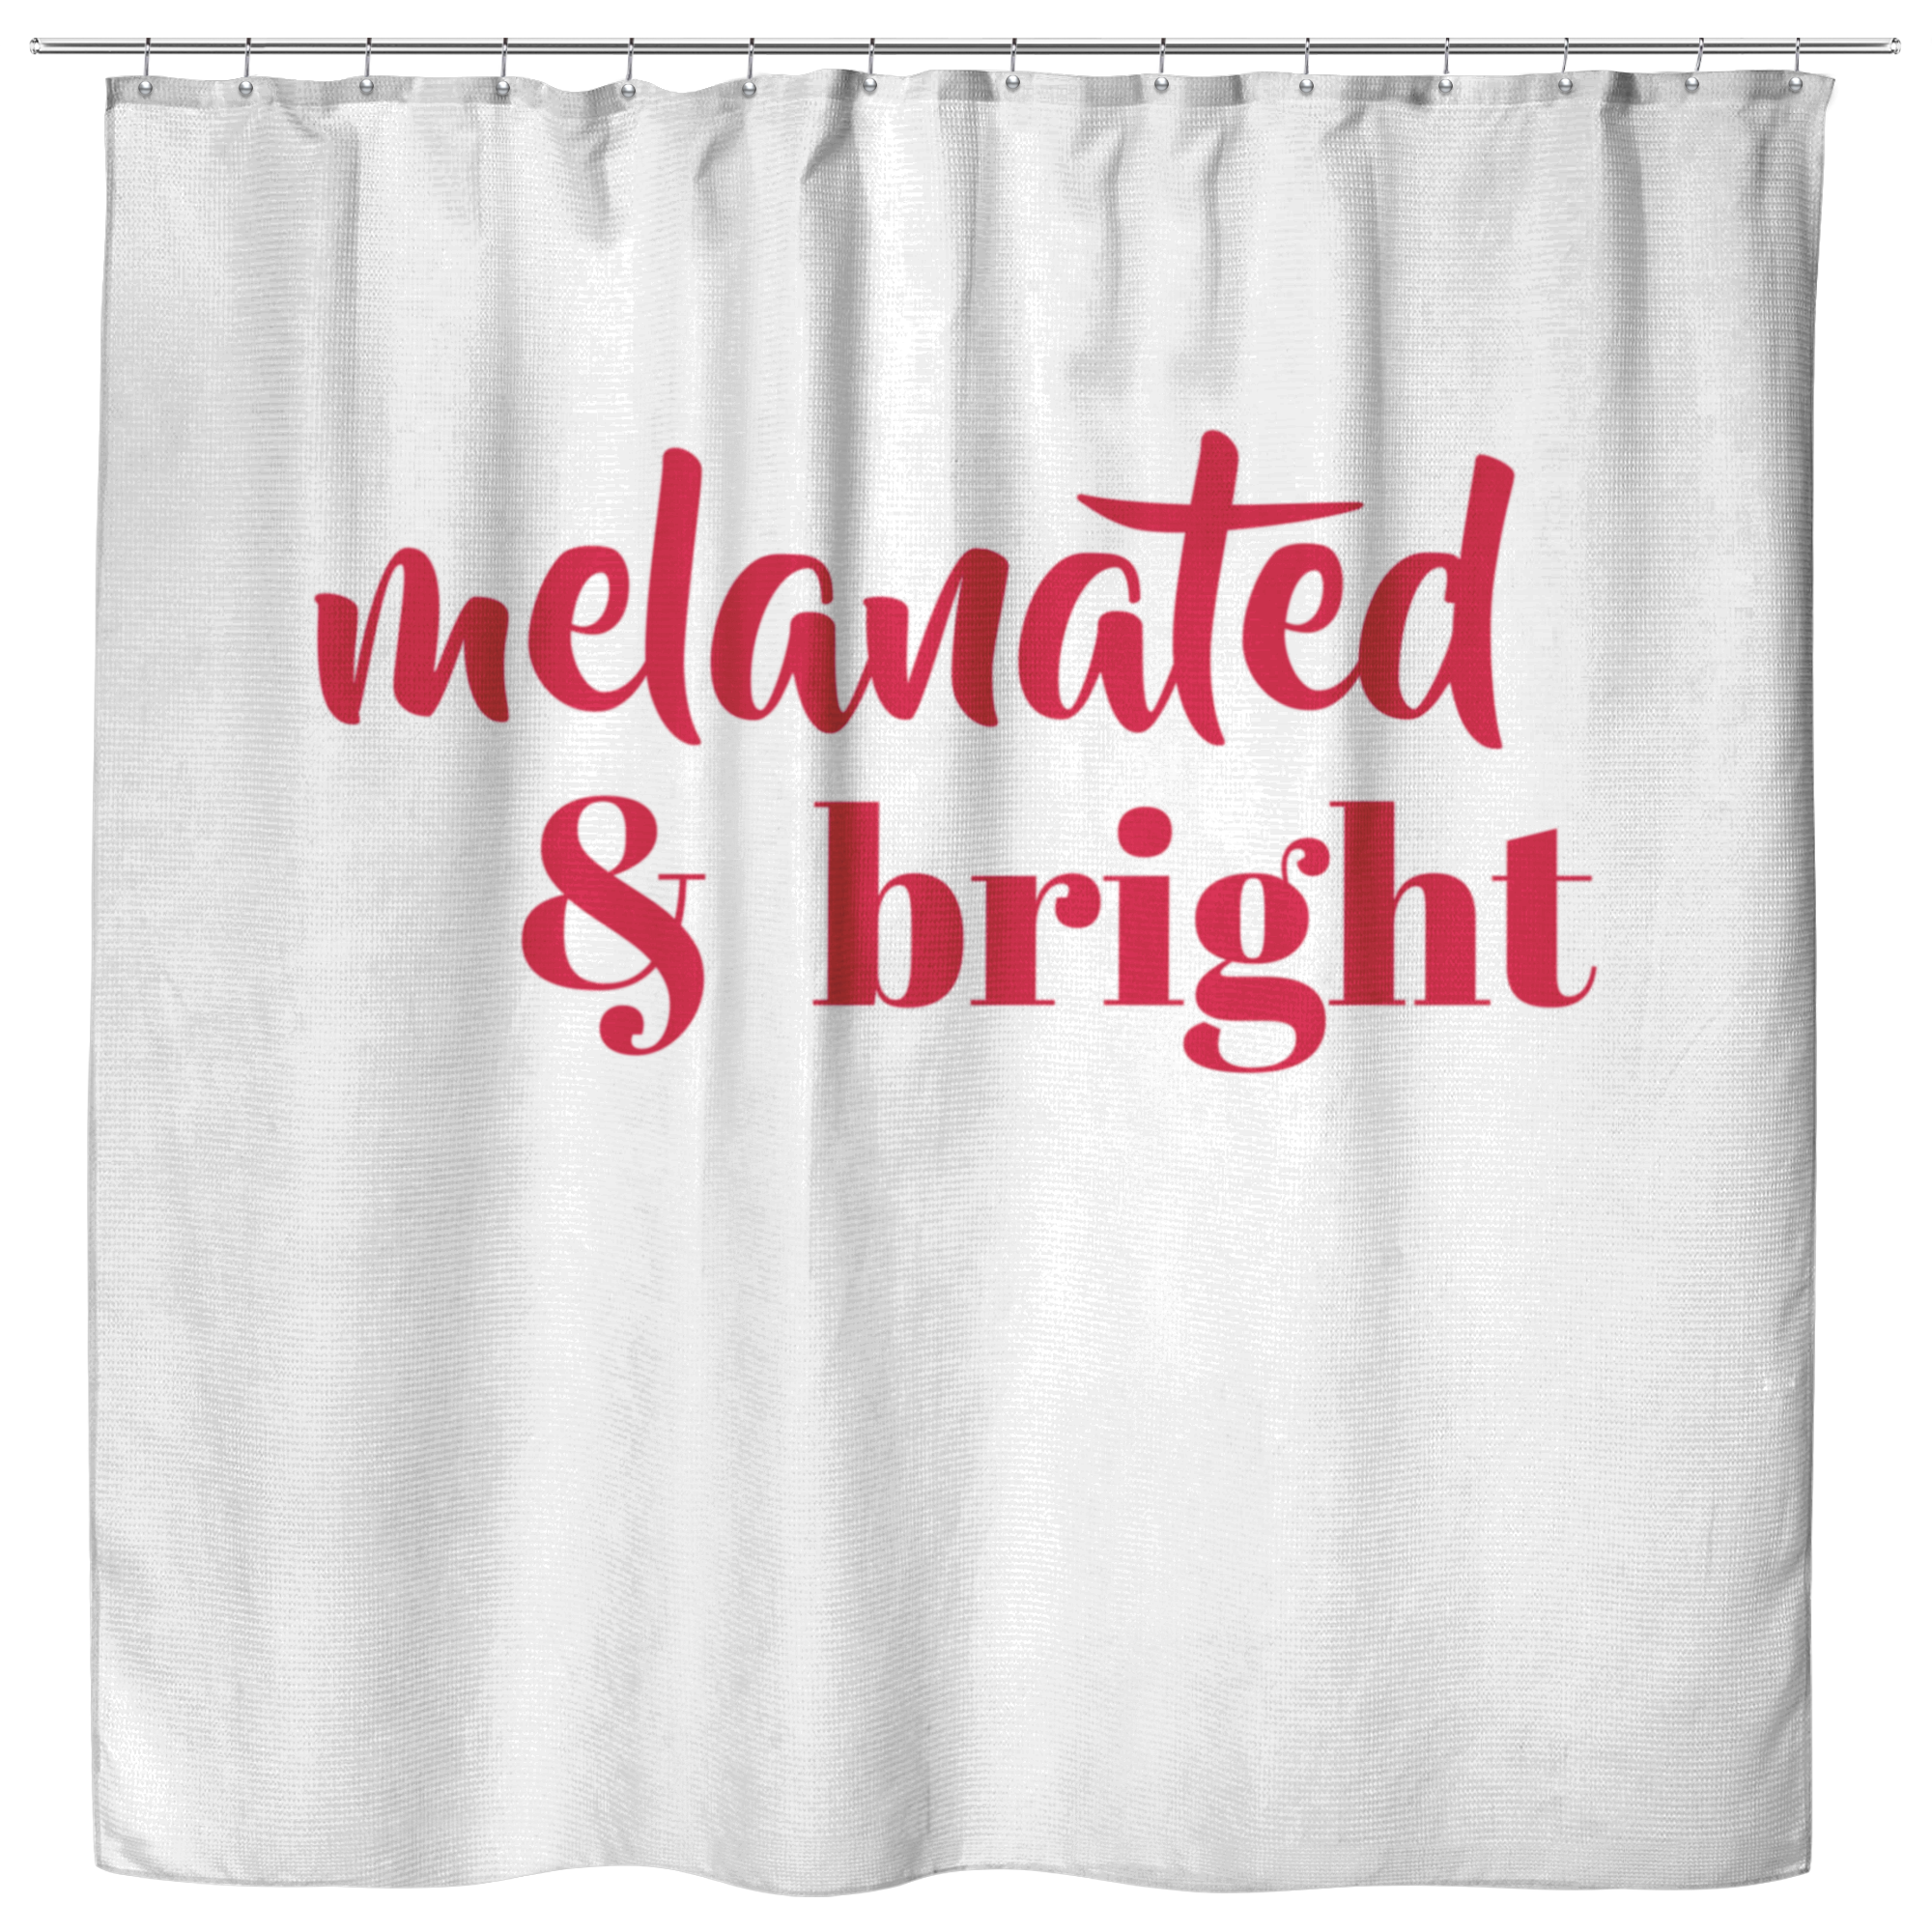 Melanated & Bright Holiday Shower Curtain White/Red - apparel for families of color | black owned business